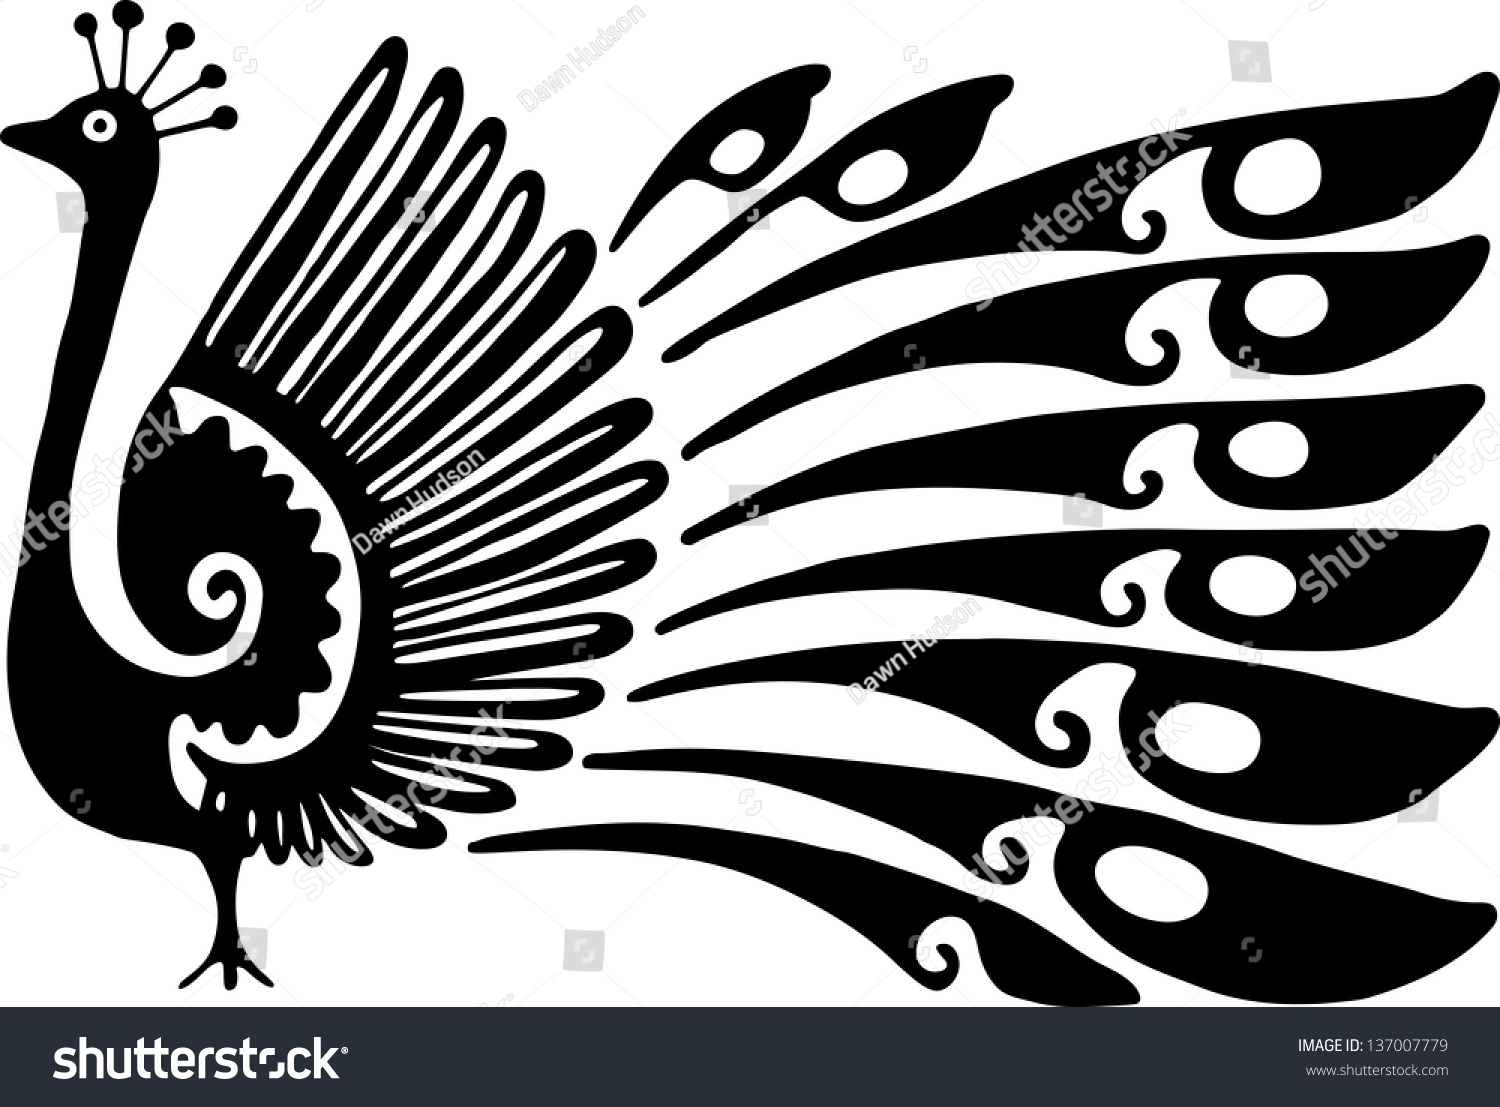 Simple Black And White Line Art : Simple black and white line drawing of a decorative